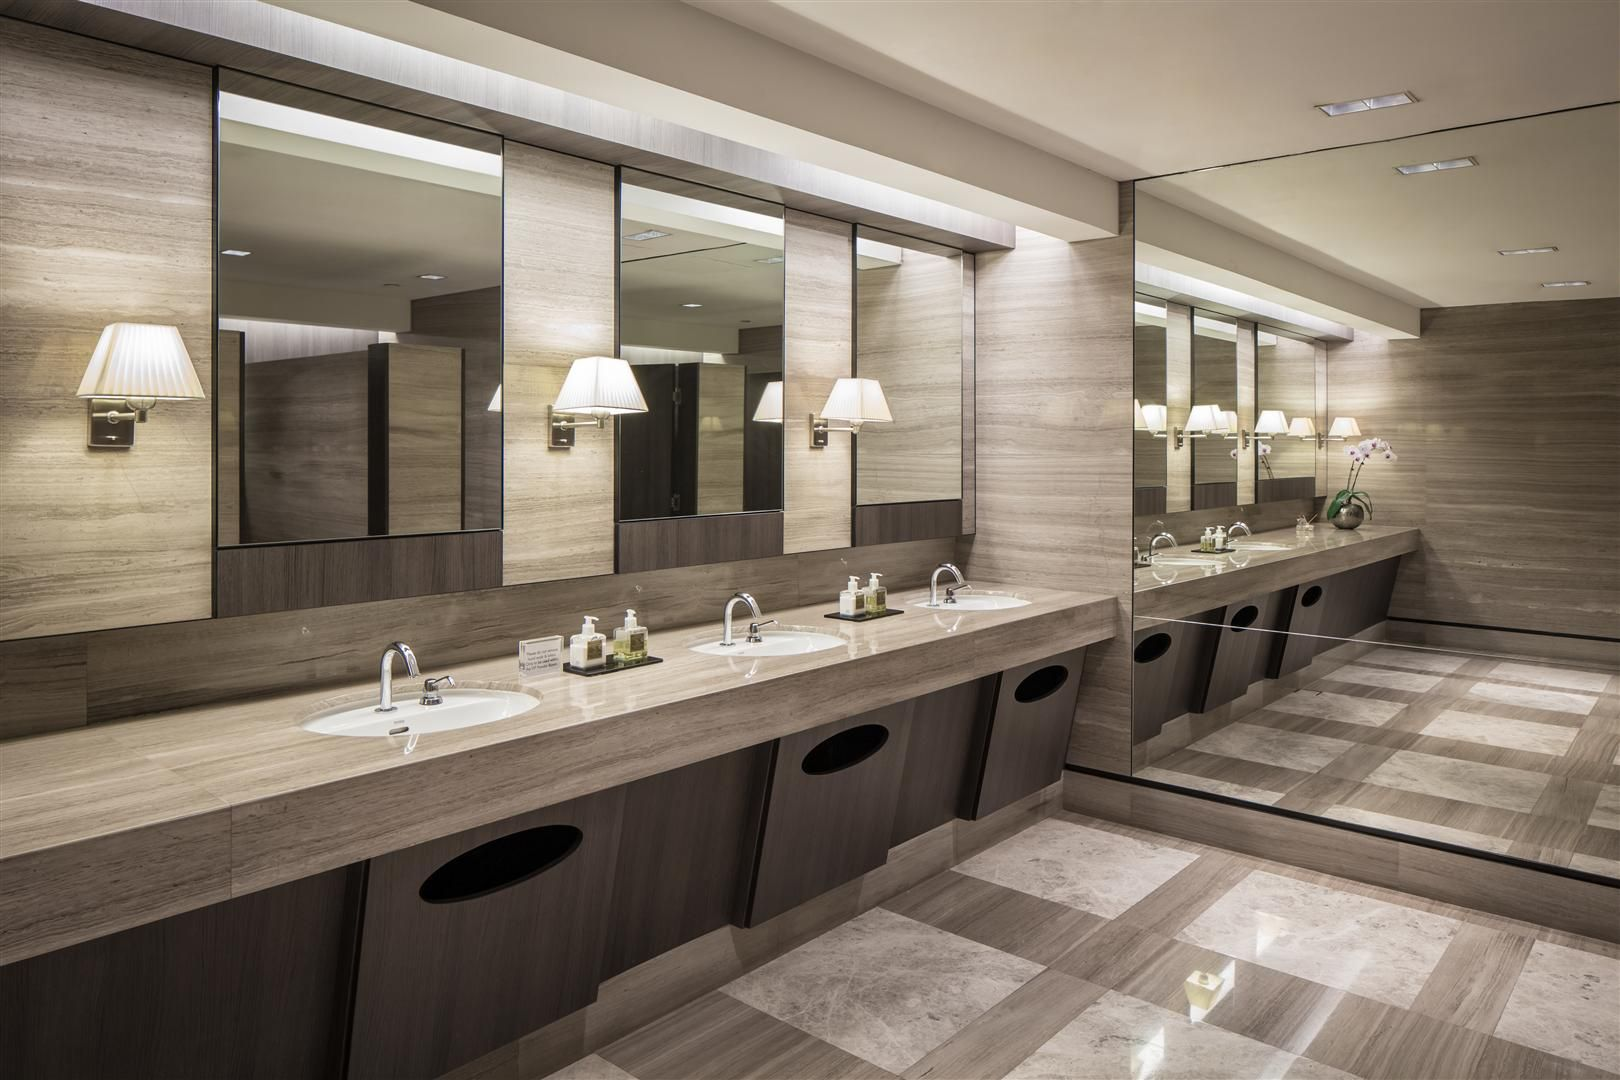 Public toilet paragon shopping mall singapore by dp design for Modern washroom designs